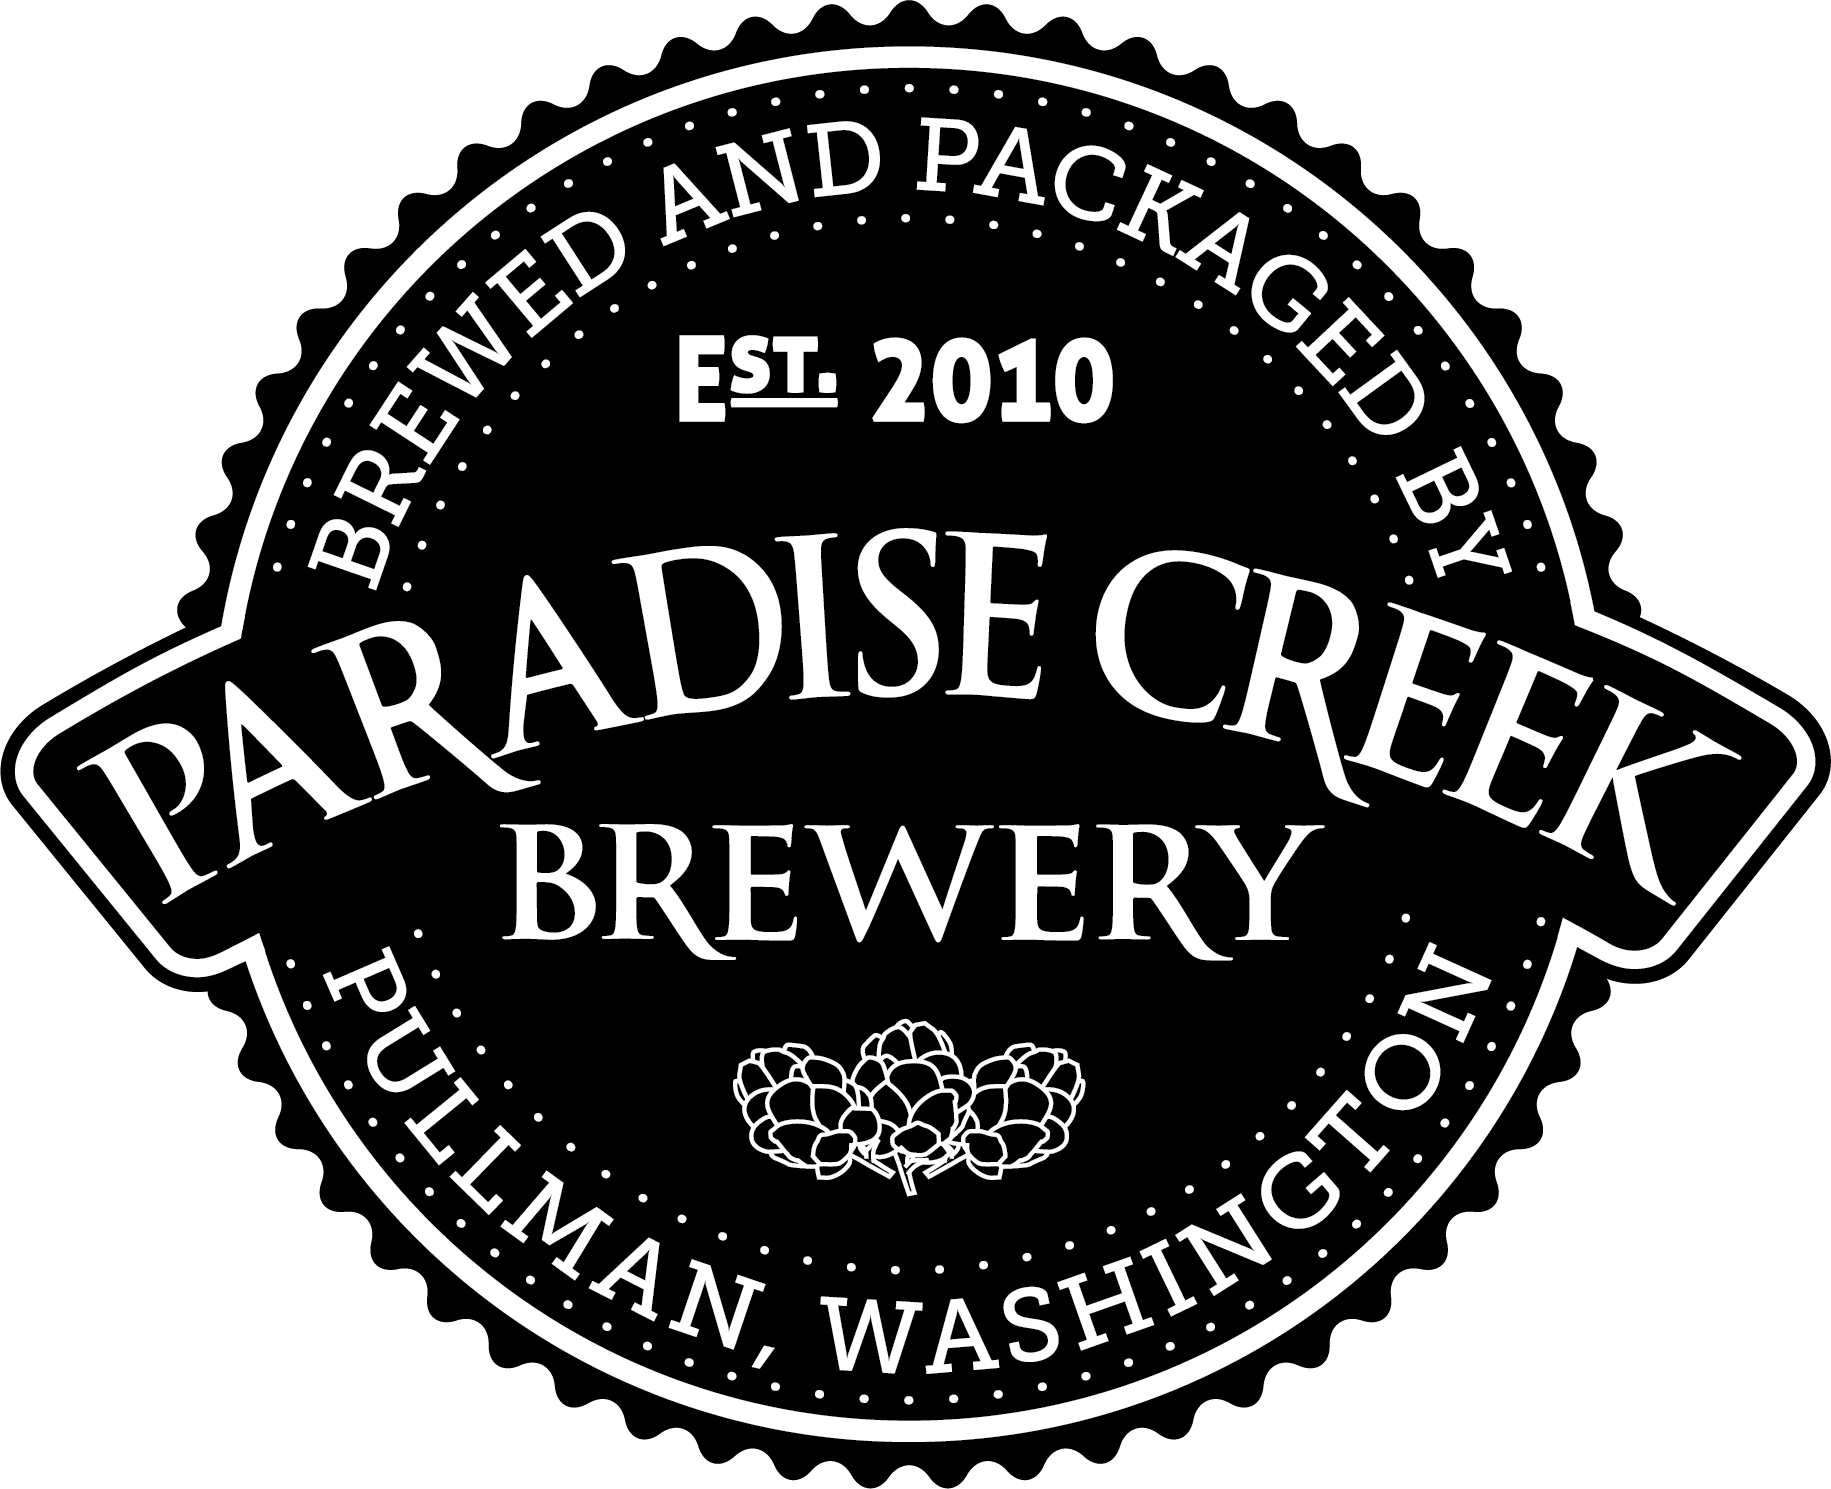 Paradise Creek Brewery - Trailside